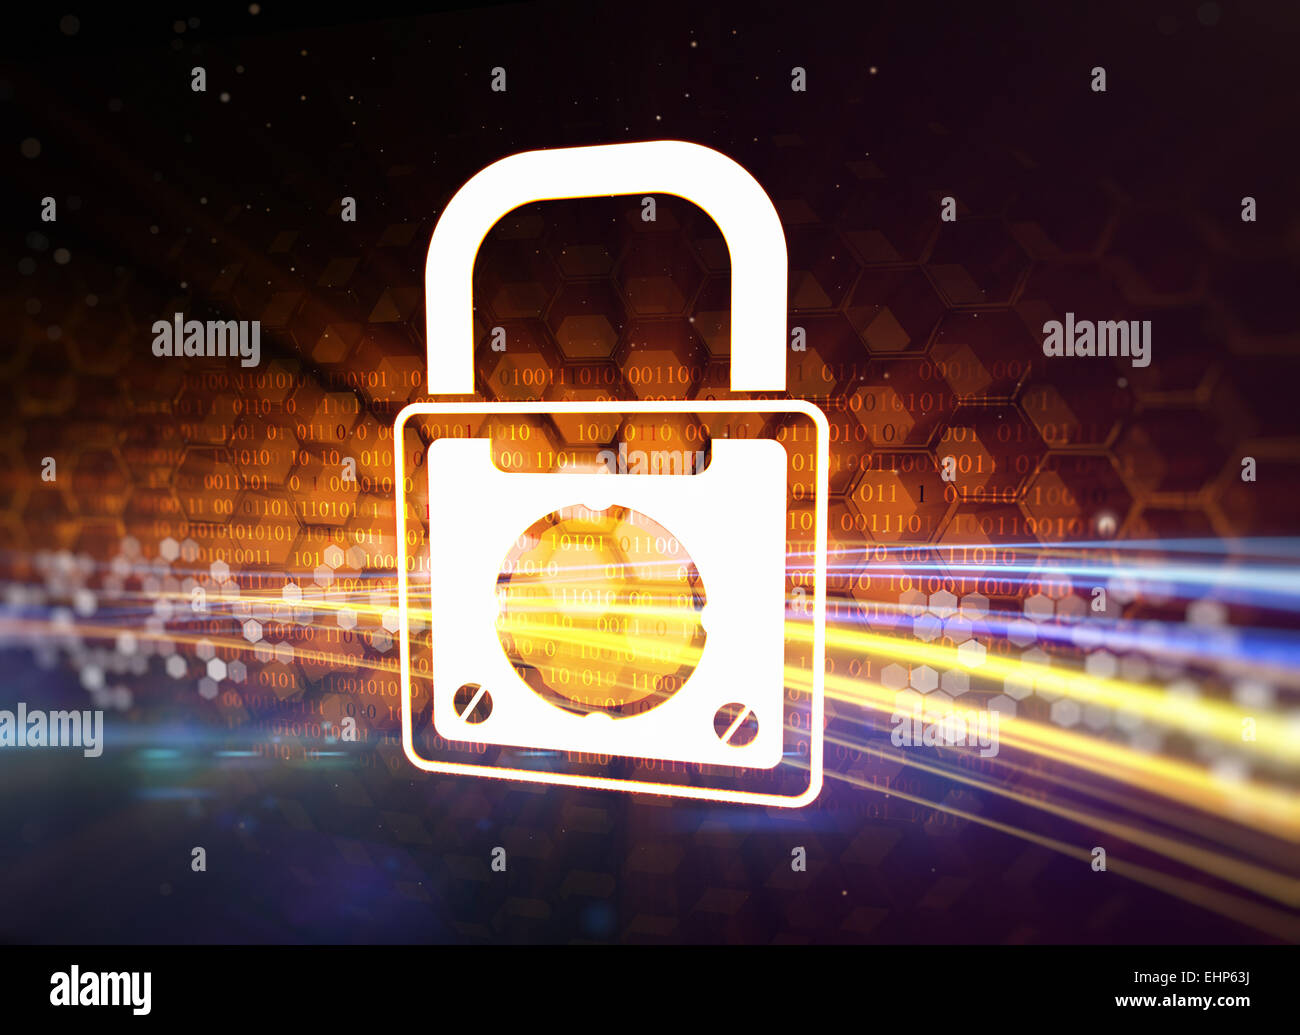 Padlock as a symbol of information safety Stock Photo